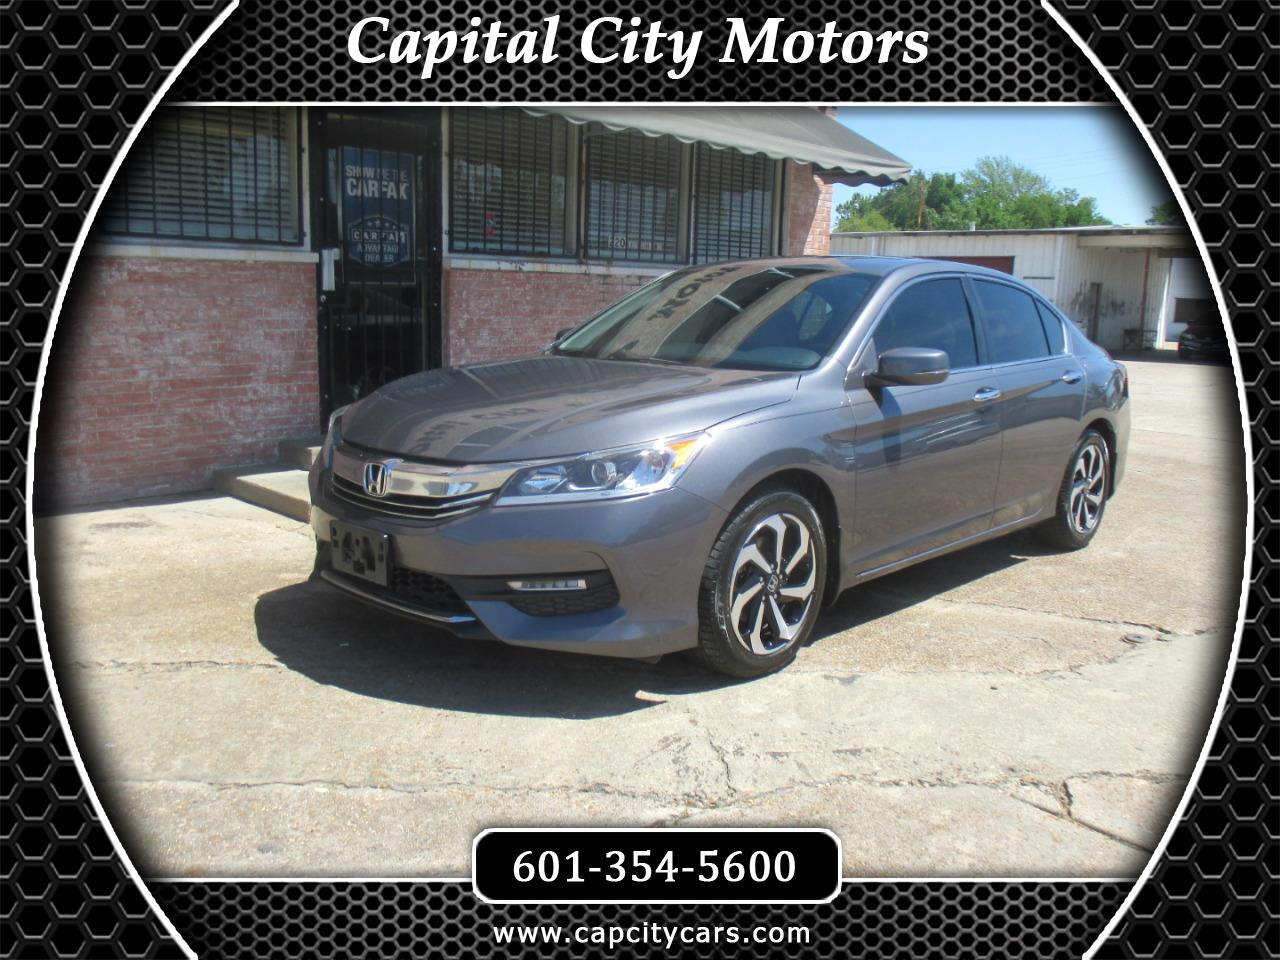 2016 Honda Accord Sedan 4dr I4 CVT EX-L